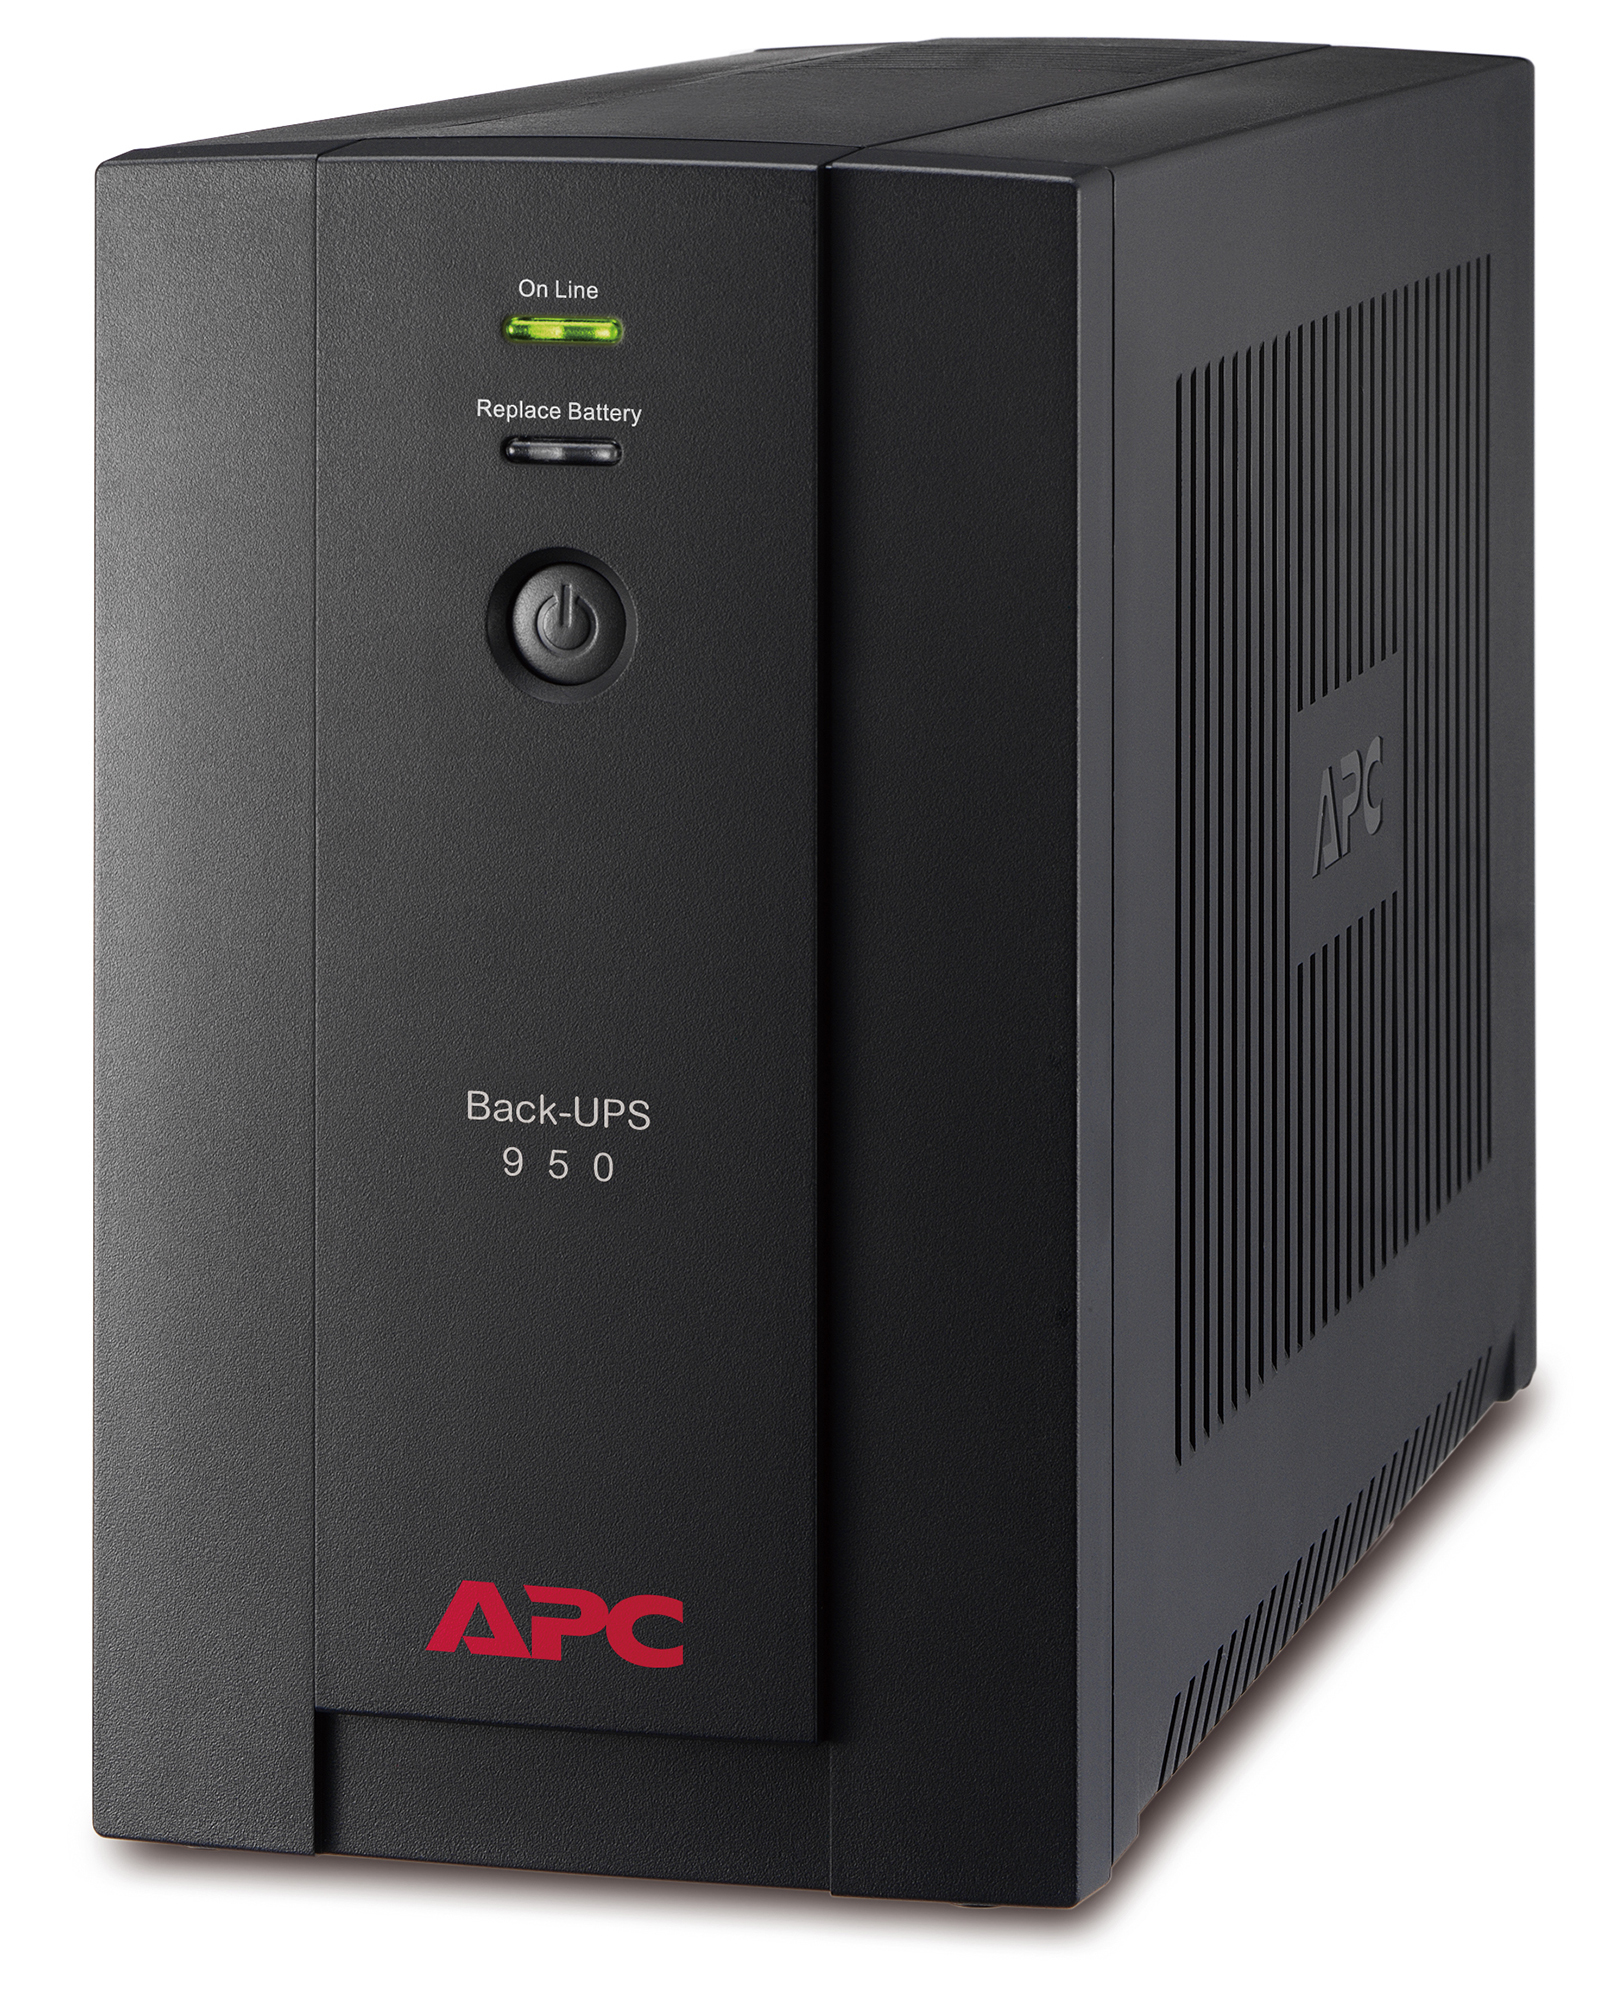 APC BACK-UPS LINE-INTERACTIVE 950VA 6AC OUTLET(S) TOWER BLACK UPS